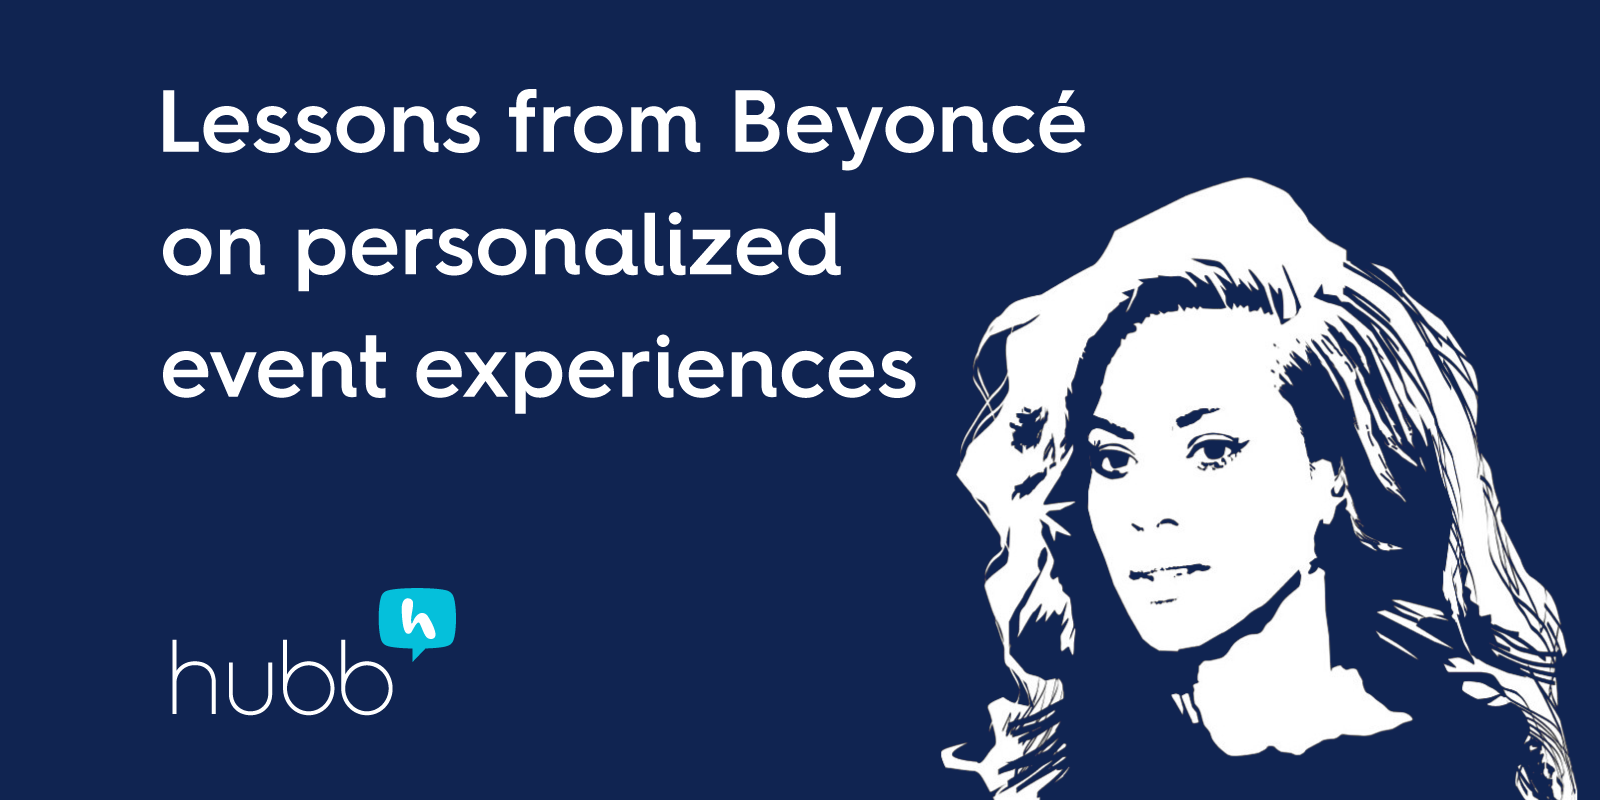 Lessons from Beyoncé on personalized event experiences